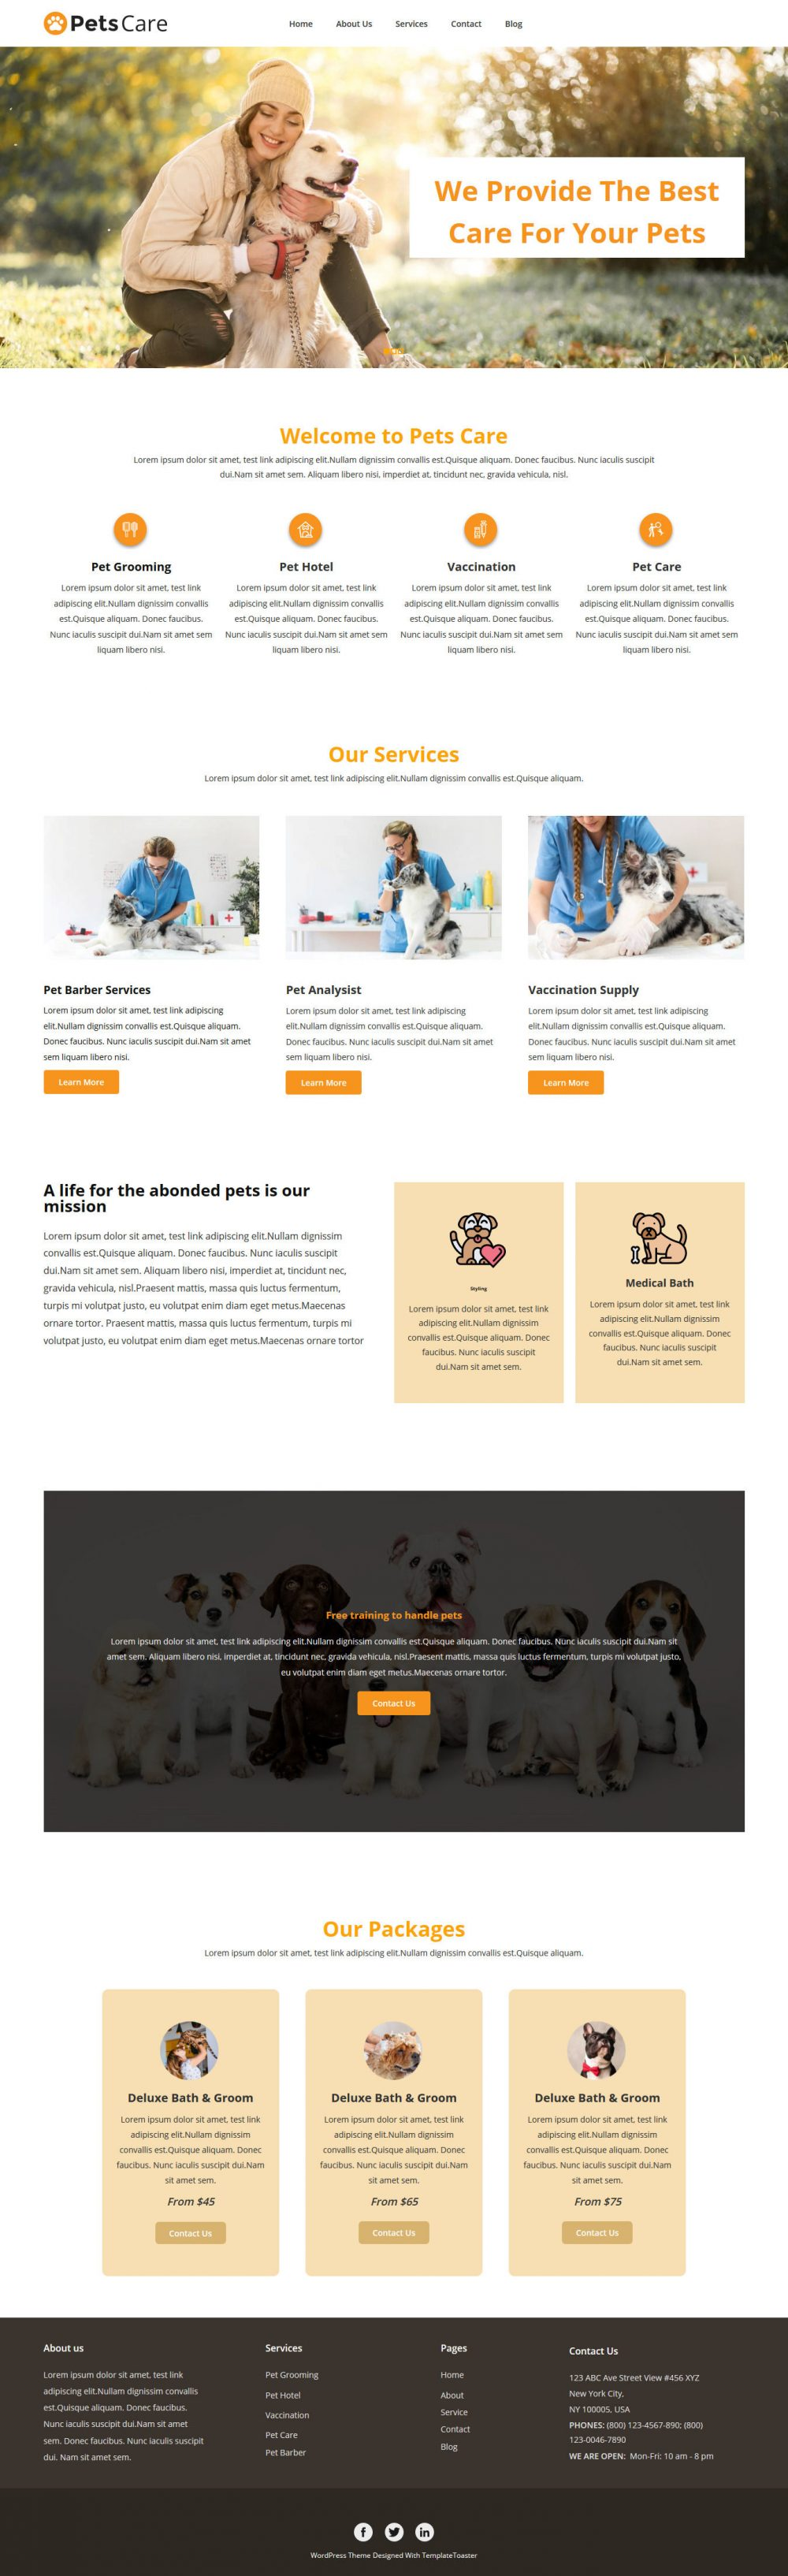 Pets Care Grooming Joomla Template